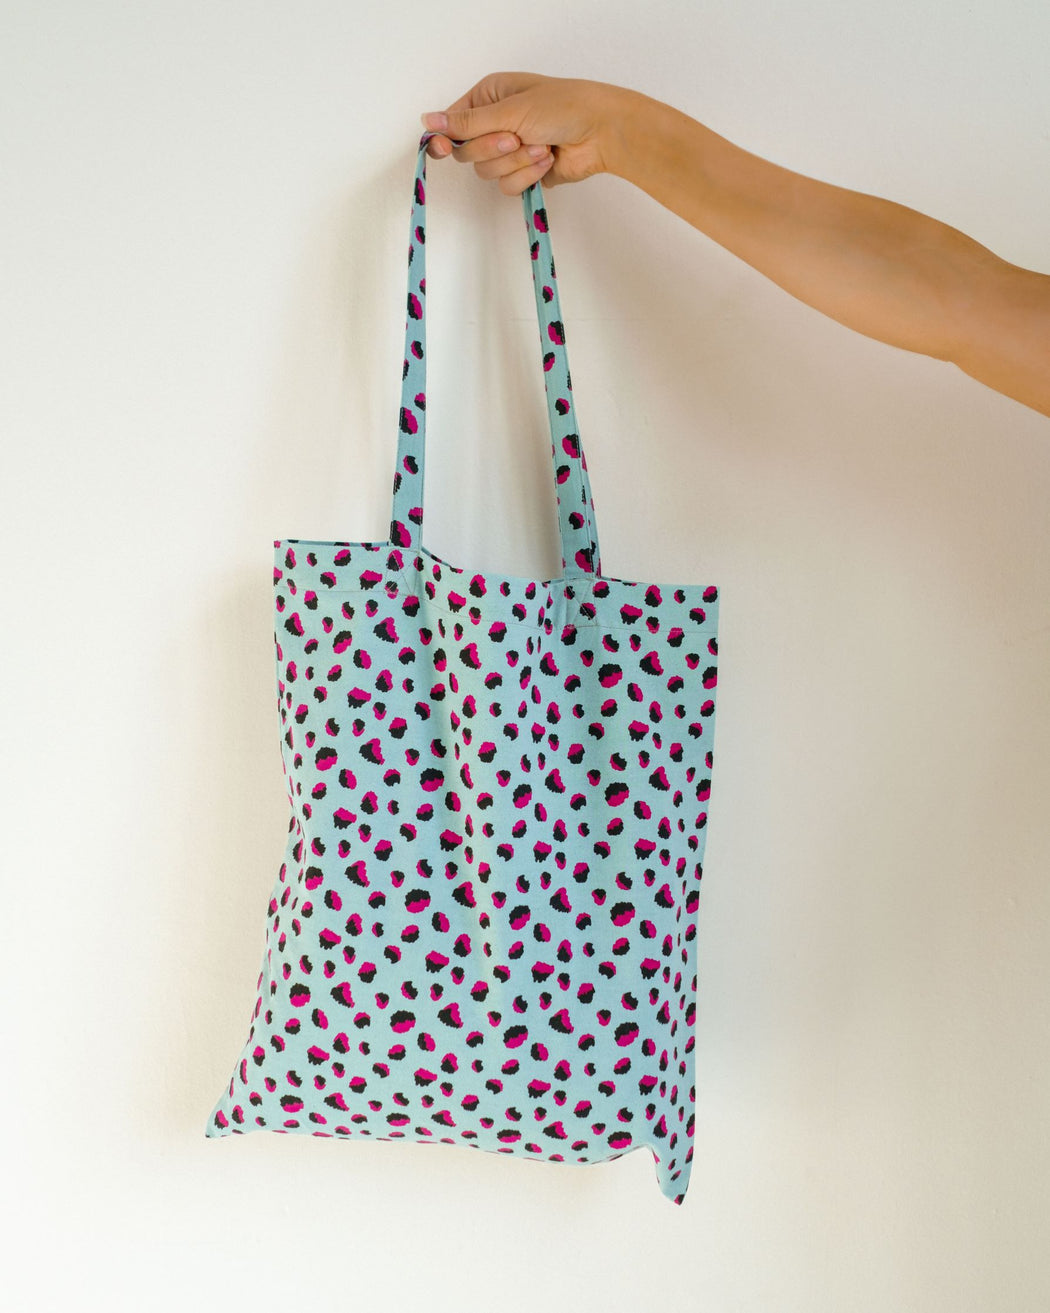 Fitzroy Tote Bag